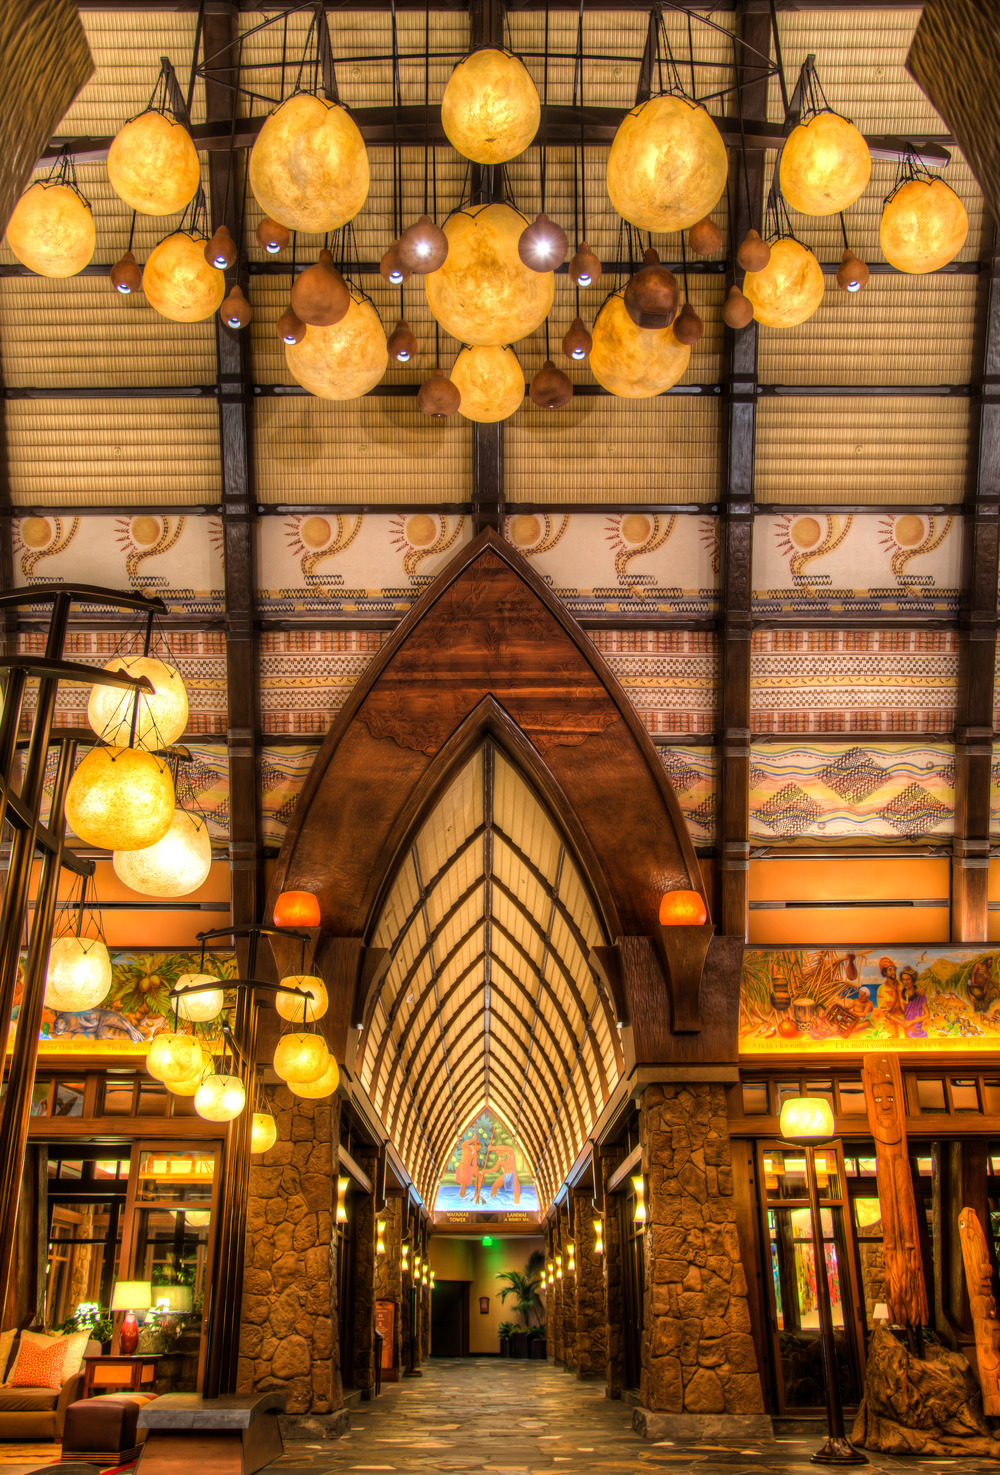 Aulani: A Disney Resort in Hawaii